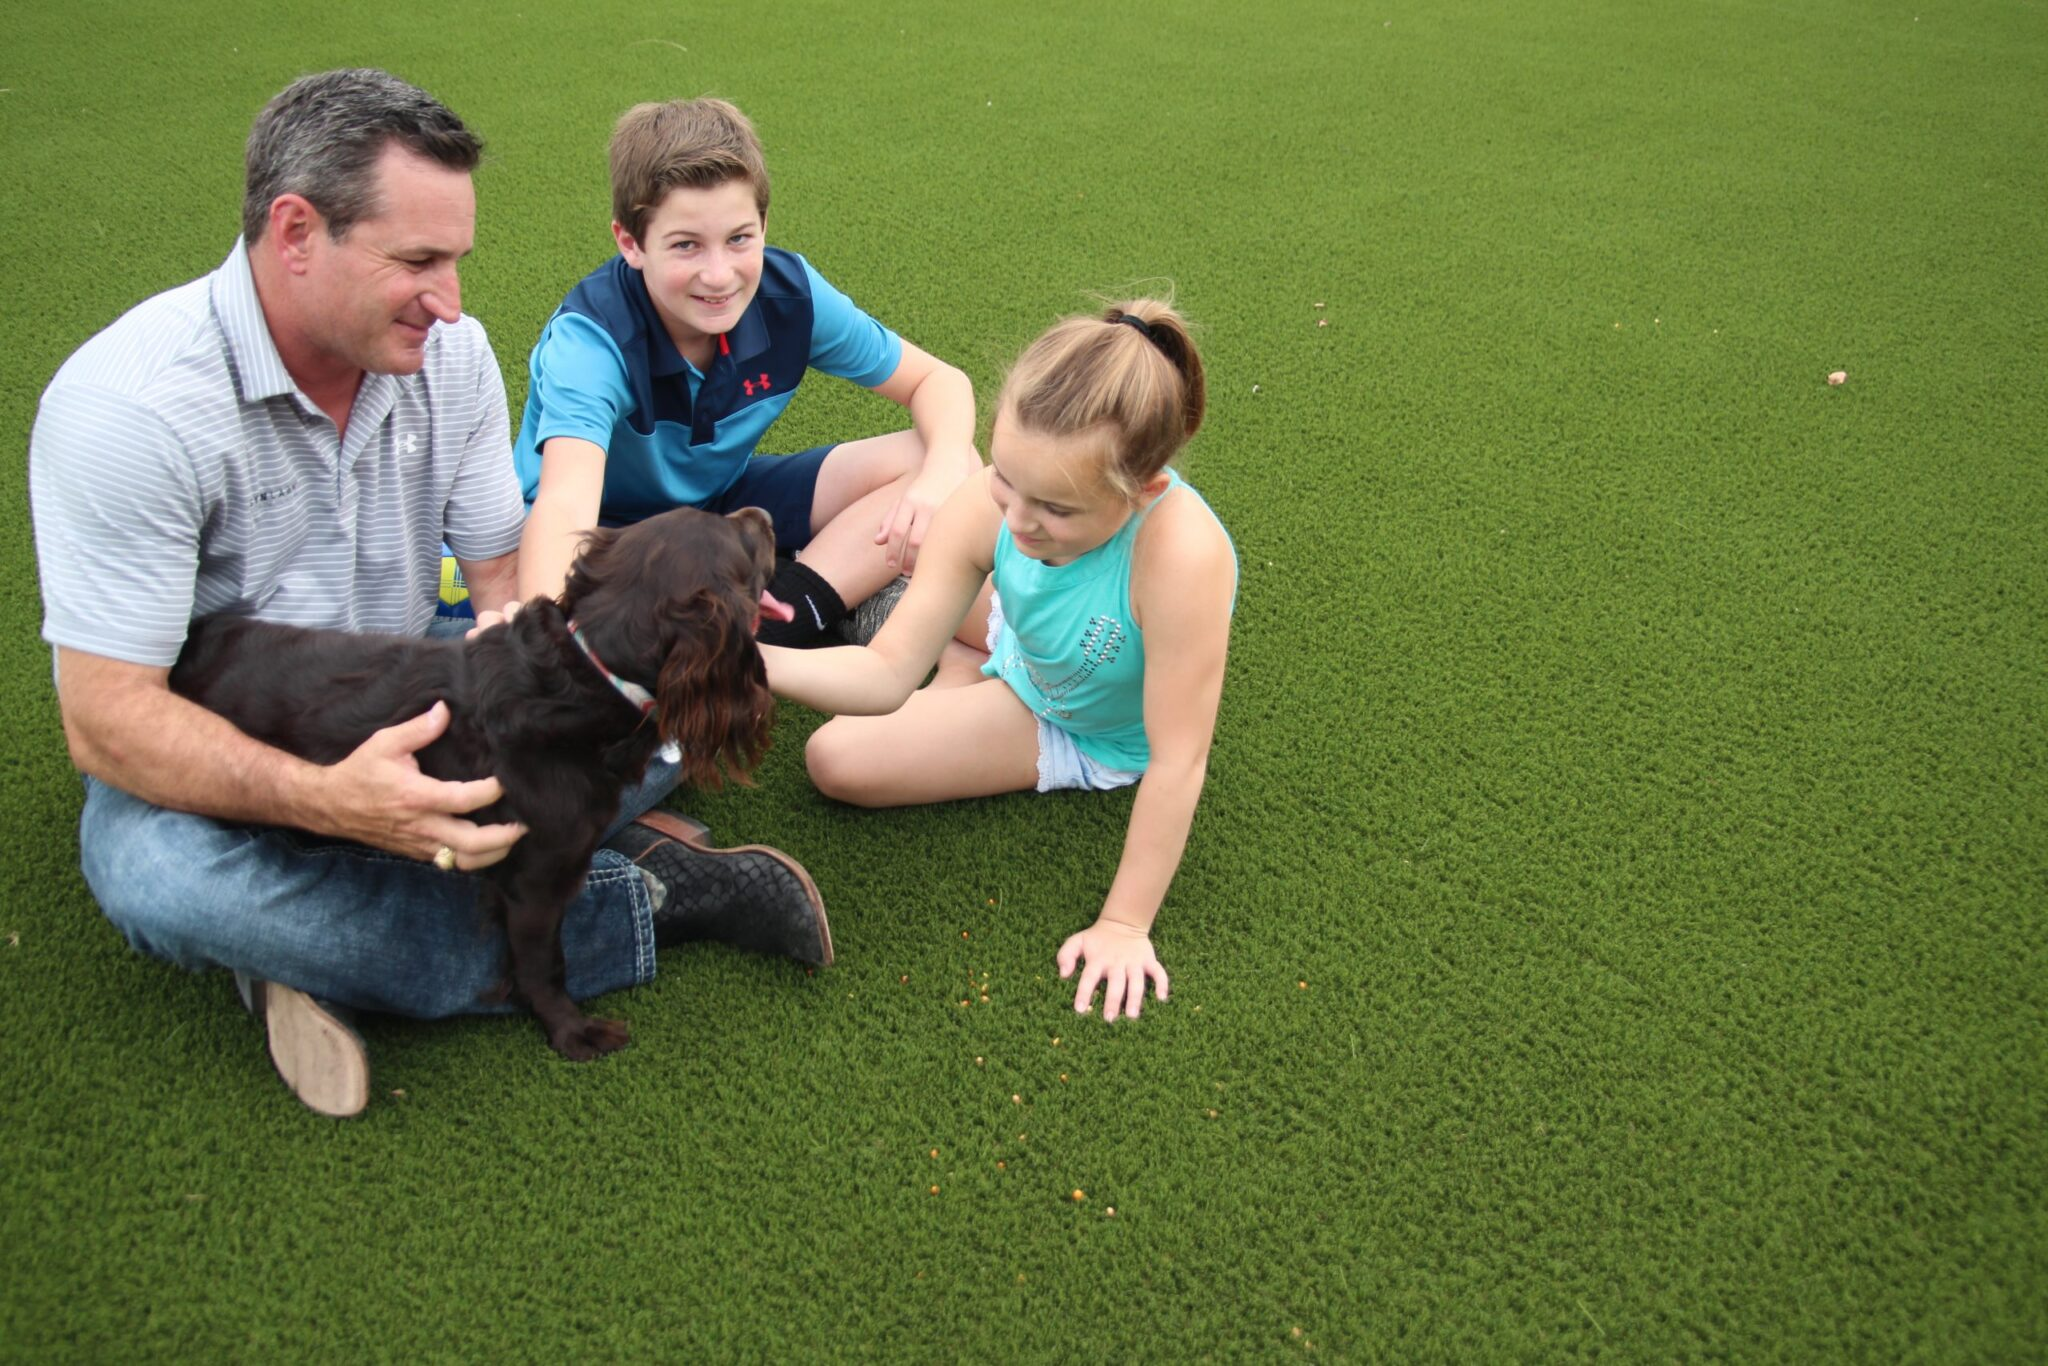 Family and pet turf, local installation